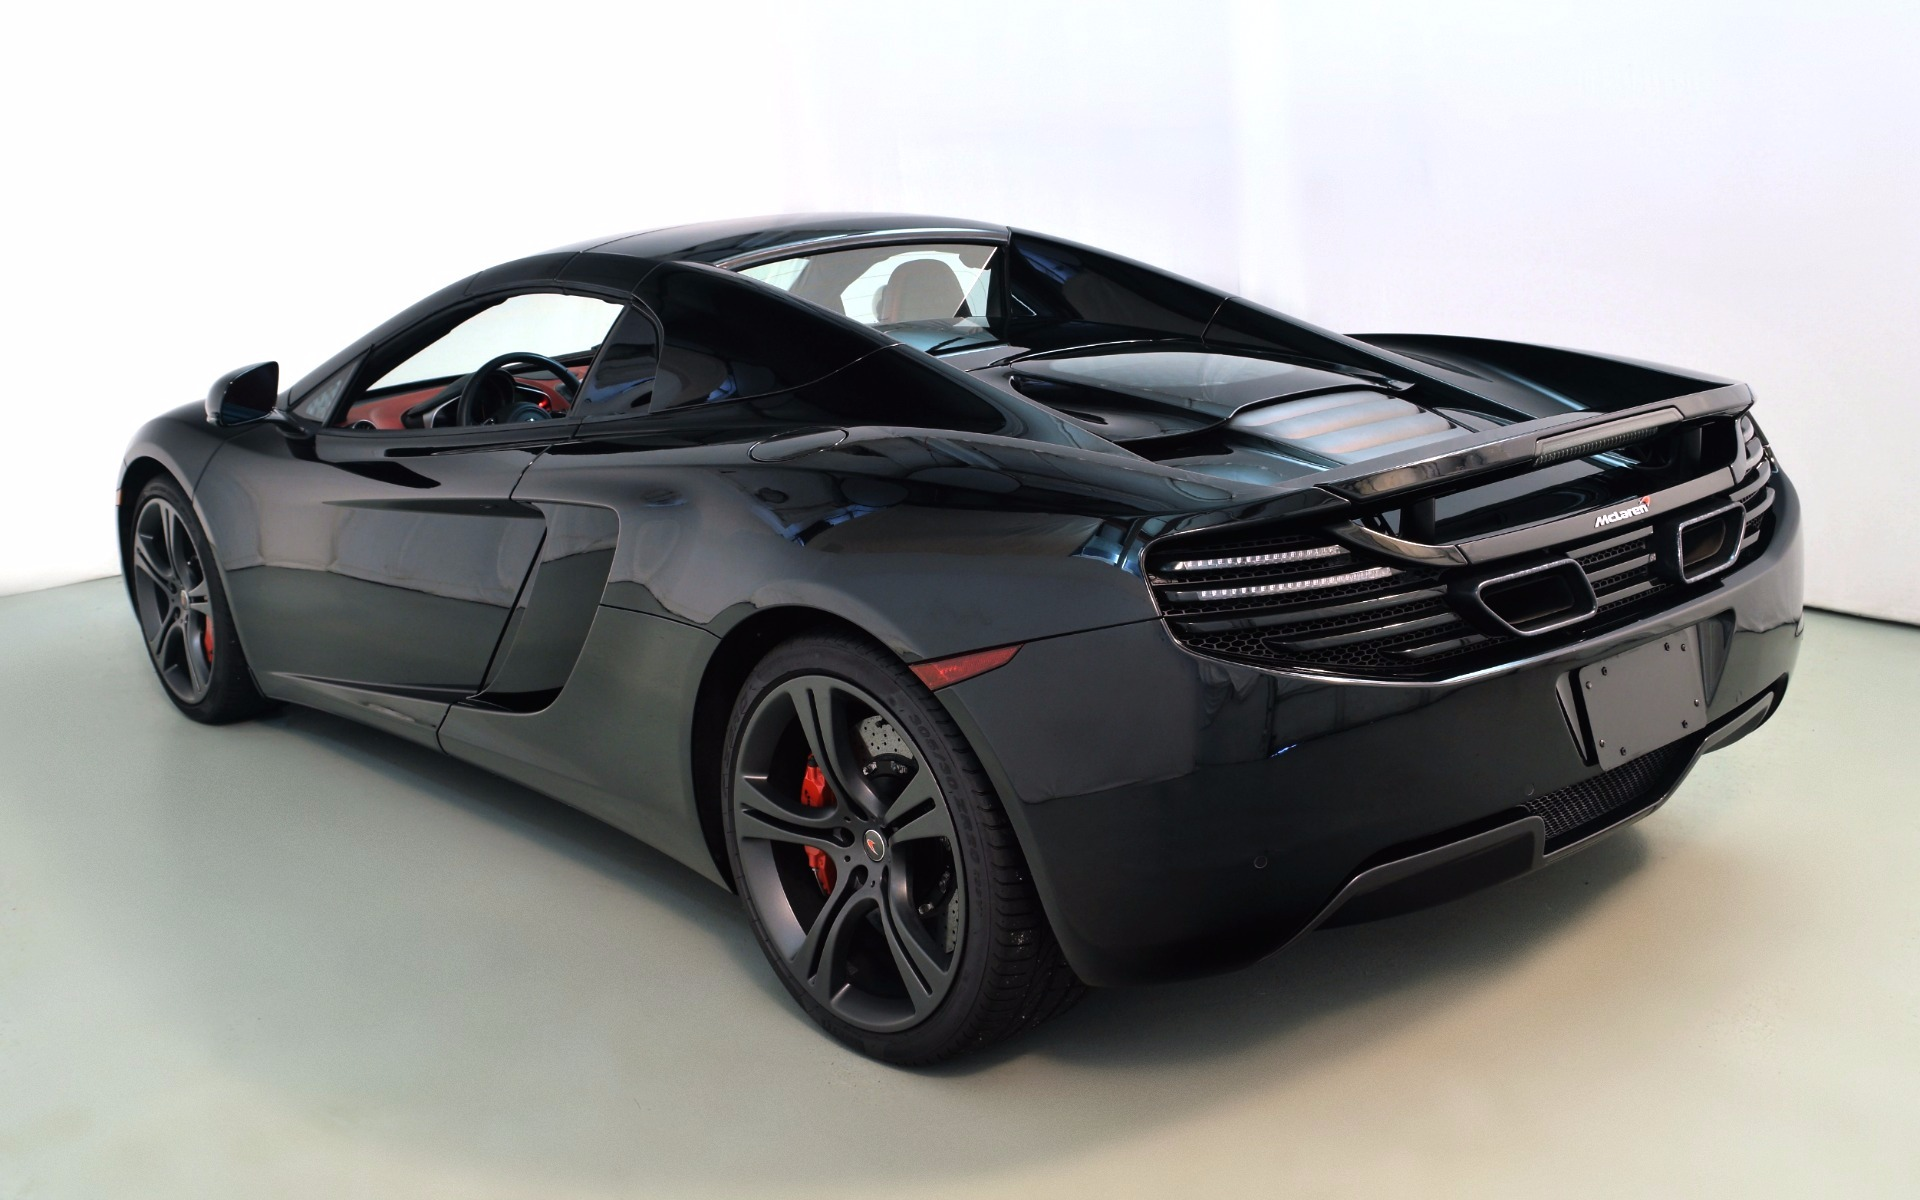 2014 mclaren mp4 12c spider for sale in norwell ma 003435 mclaren boston. Black Bedroom Furniture Sets. Home Design Ideas